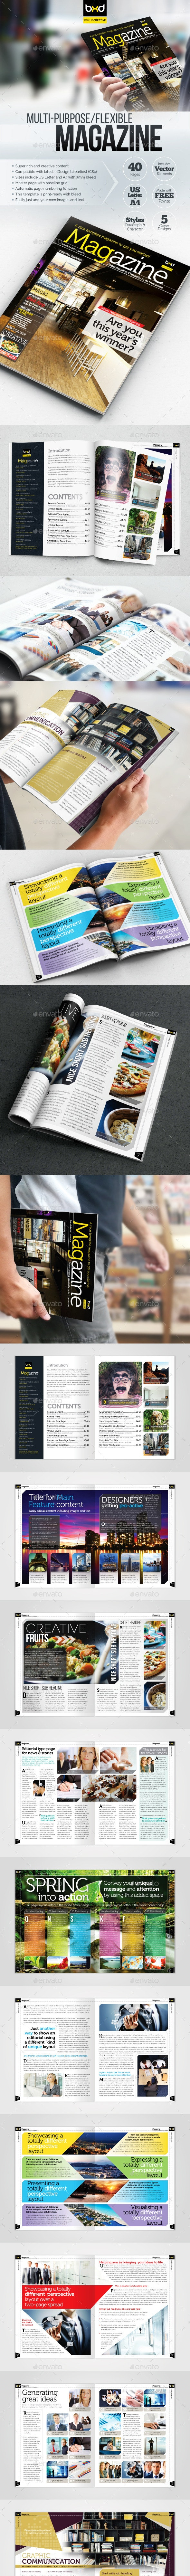 Magazine Template - InDesign 40 Page Layout V1 - Magazines Print Templates